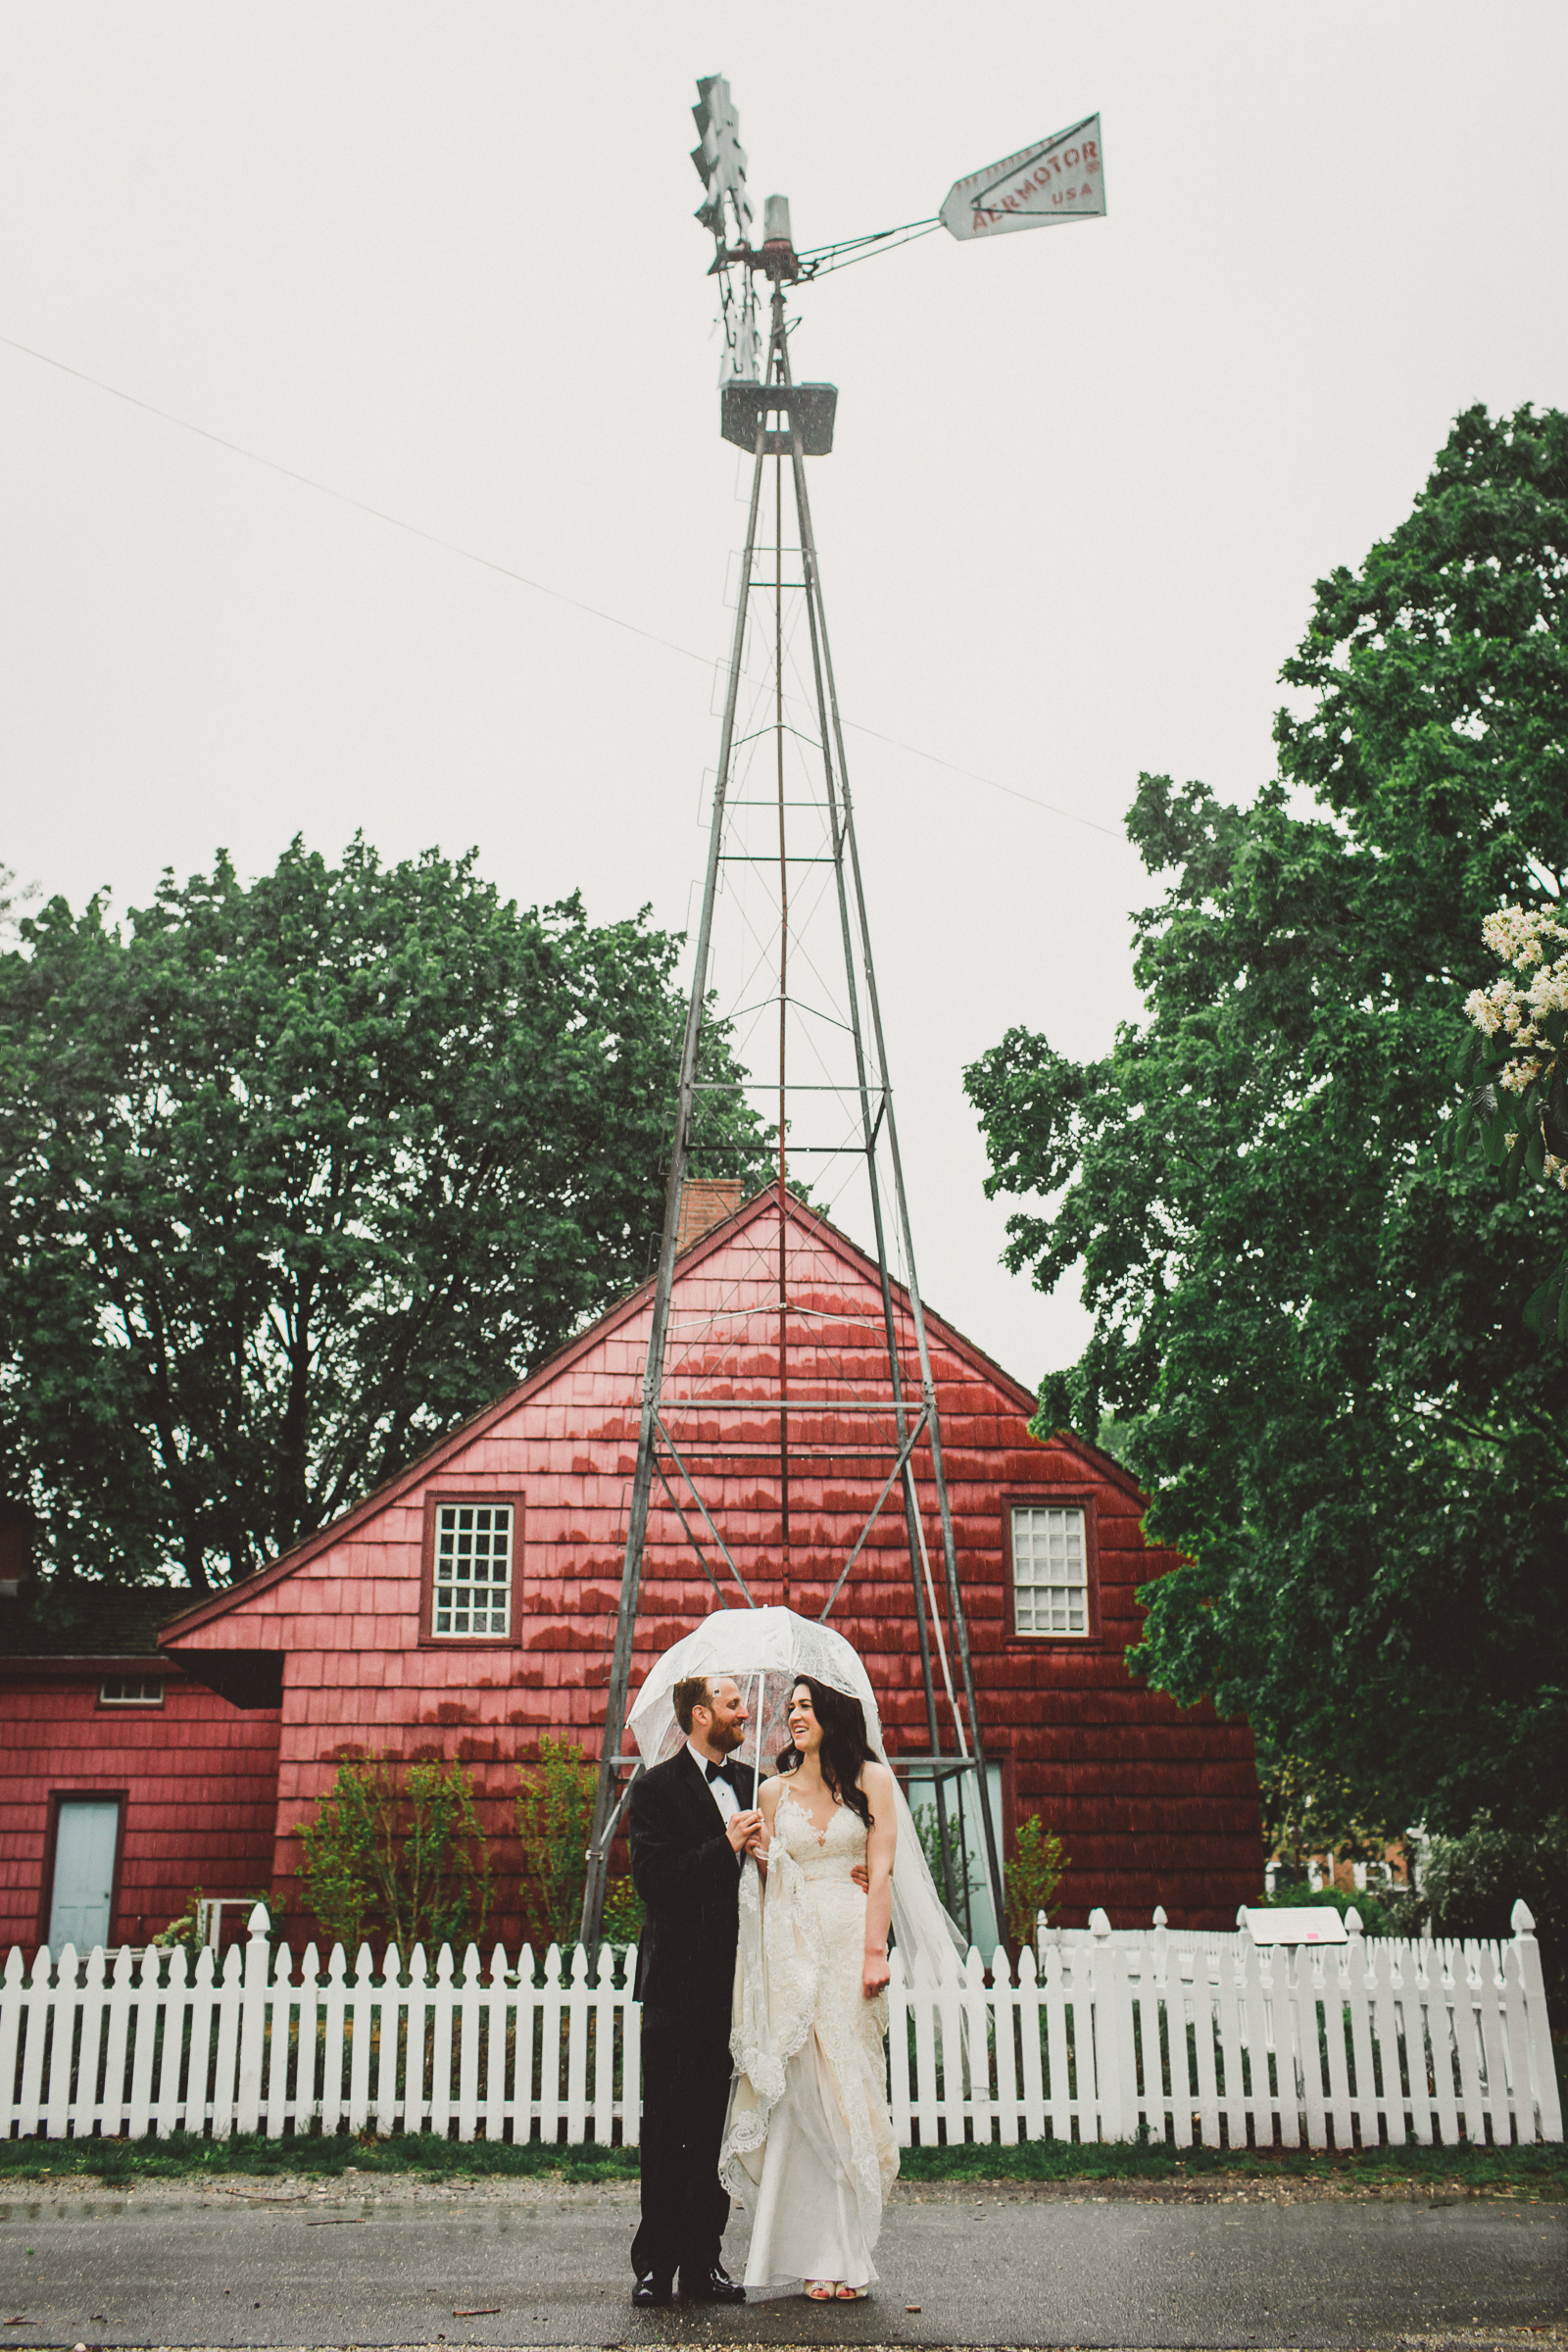 The-Queens-County-Farm-Museum-New-York-Documentary-Wedding-Photographer-52.jpg